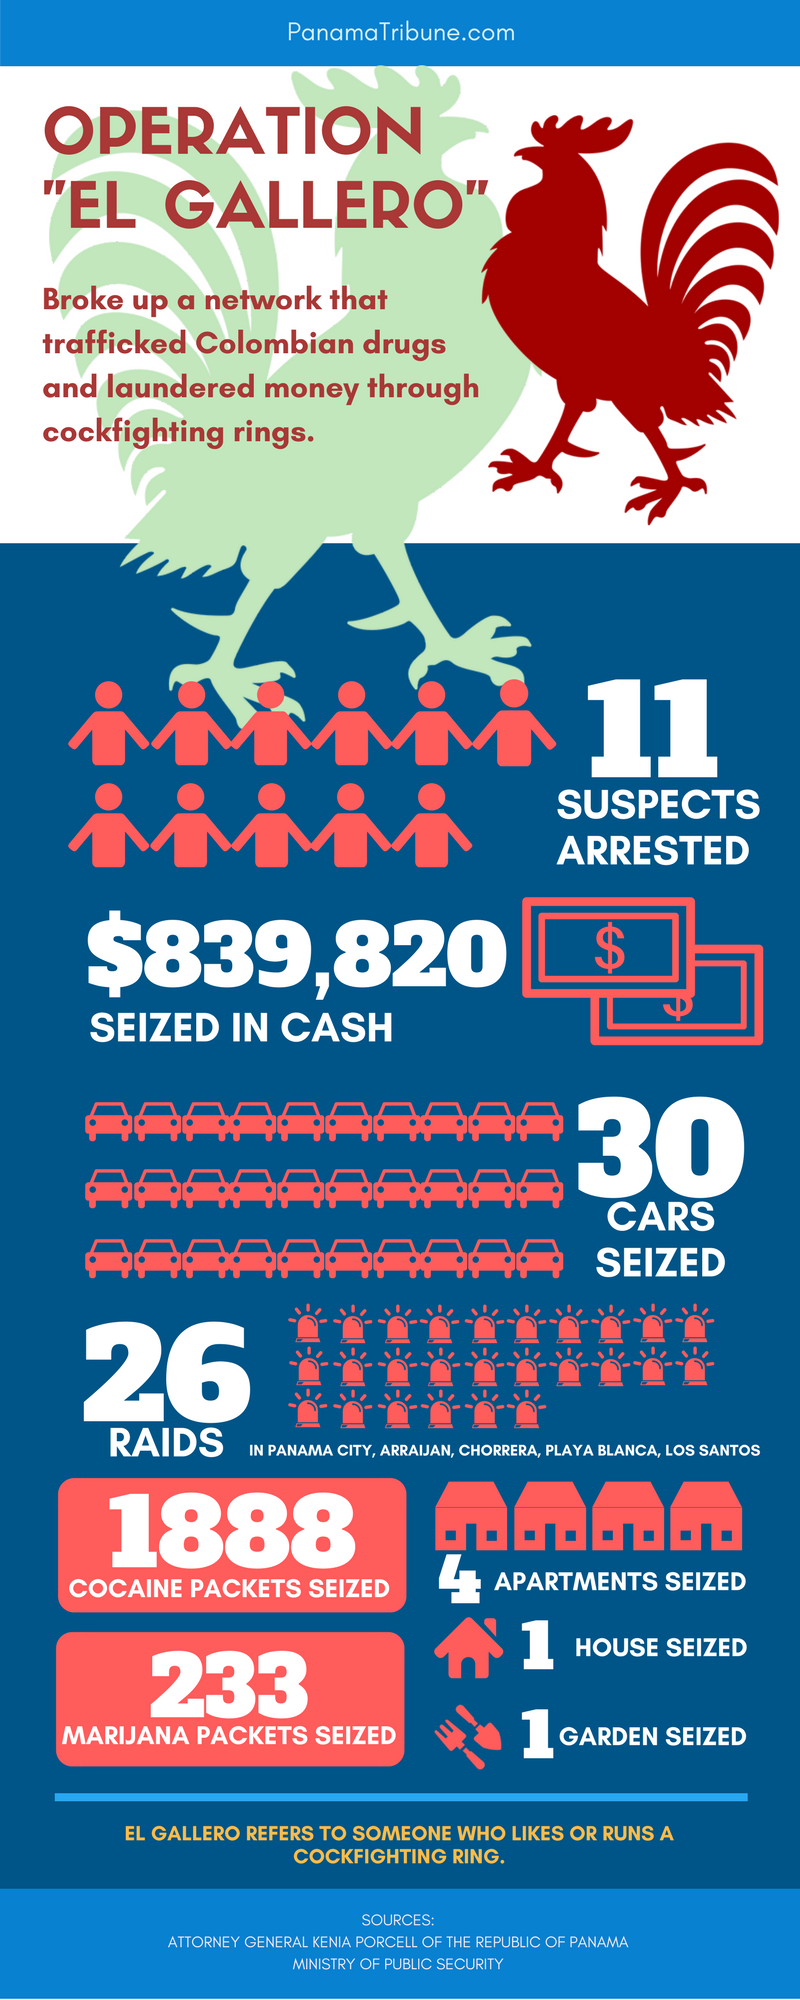 Infographic for Operation El Gallero that broke up a drug-trafficking and money-laundering ring in Panama.